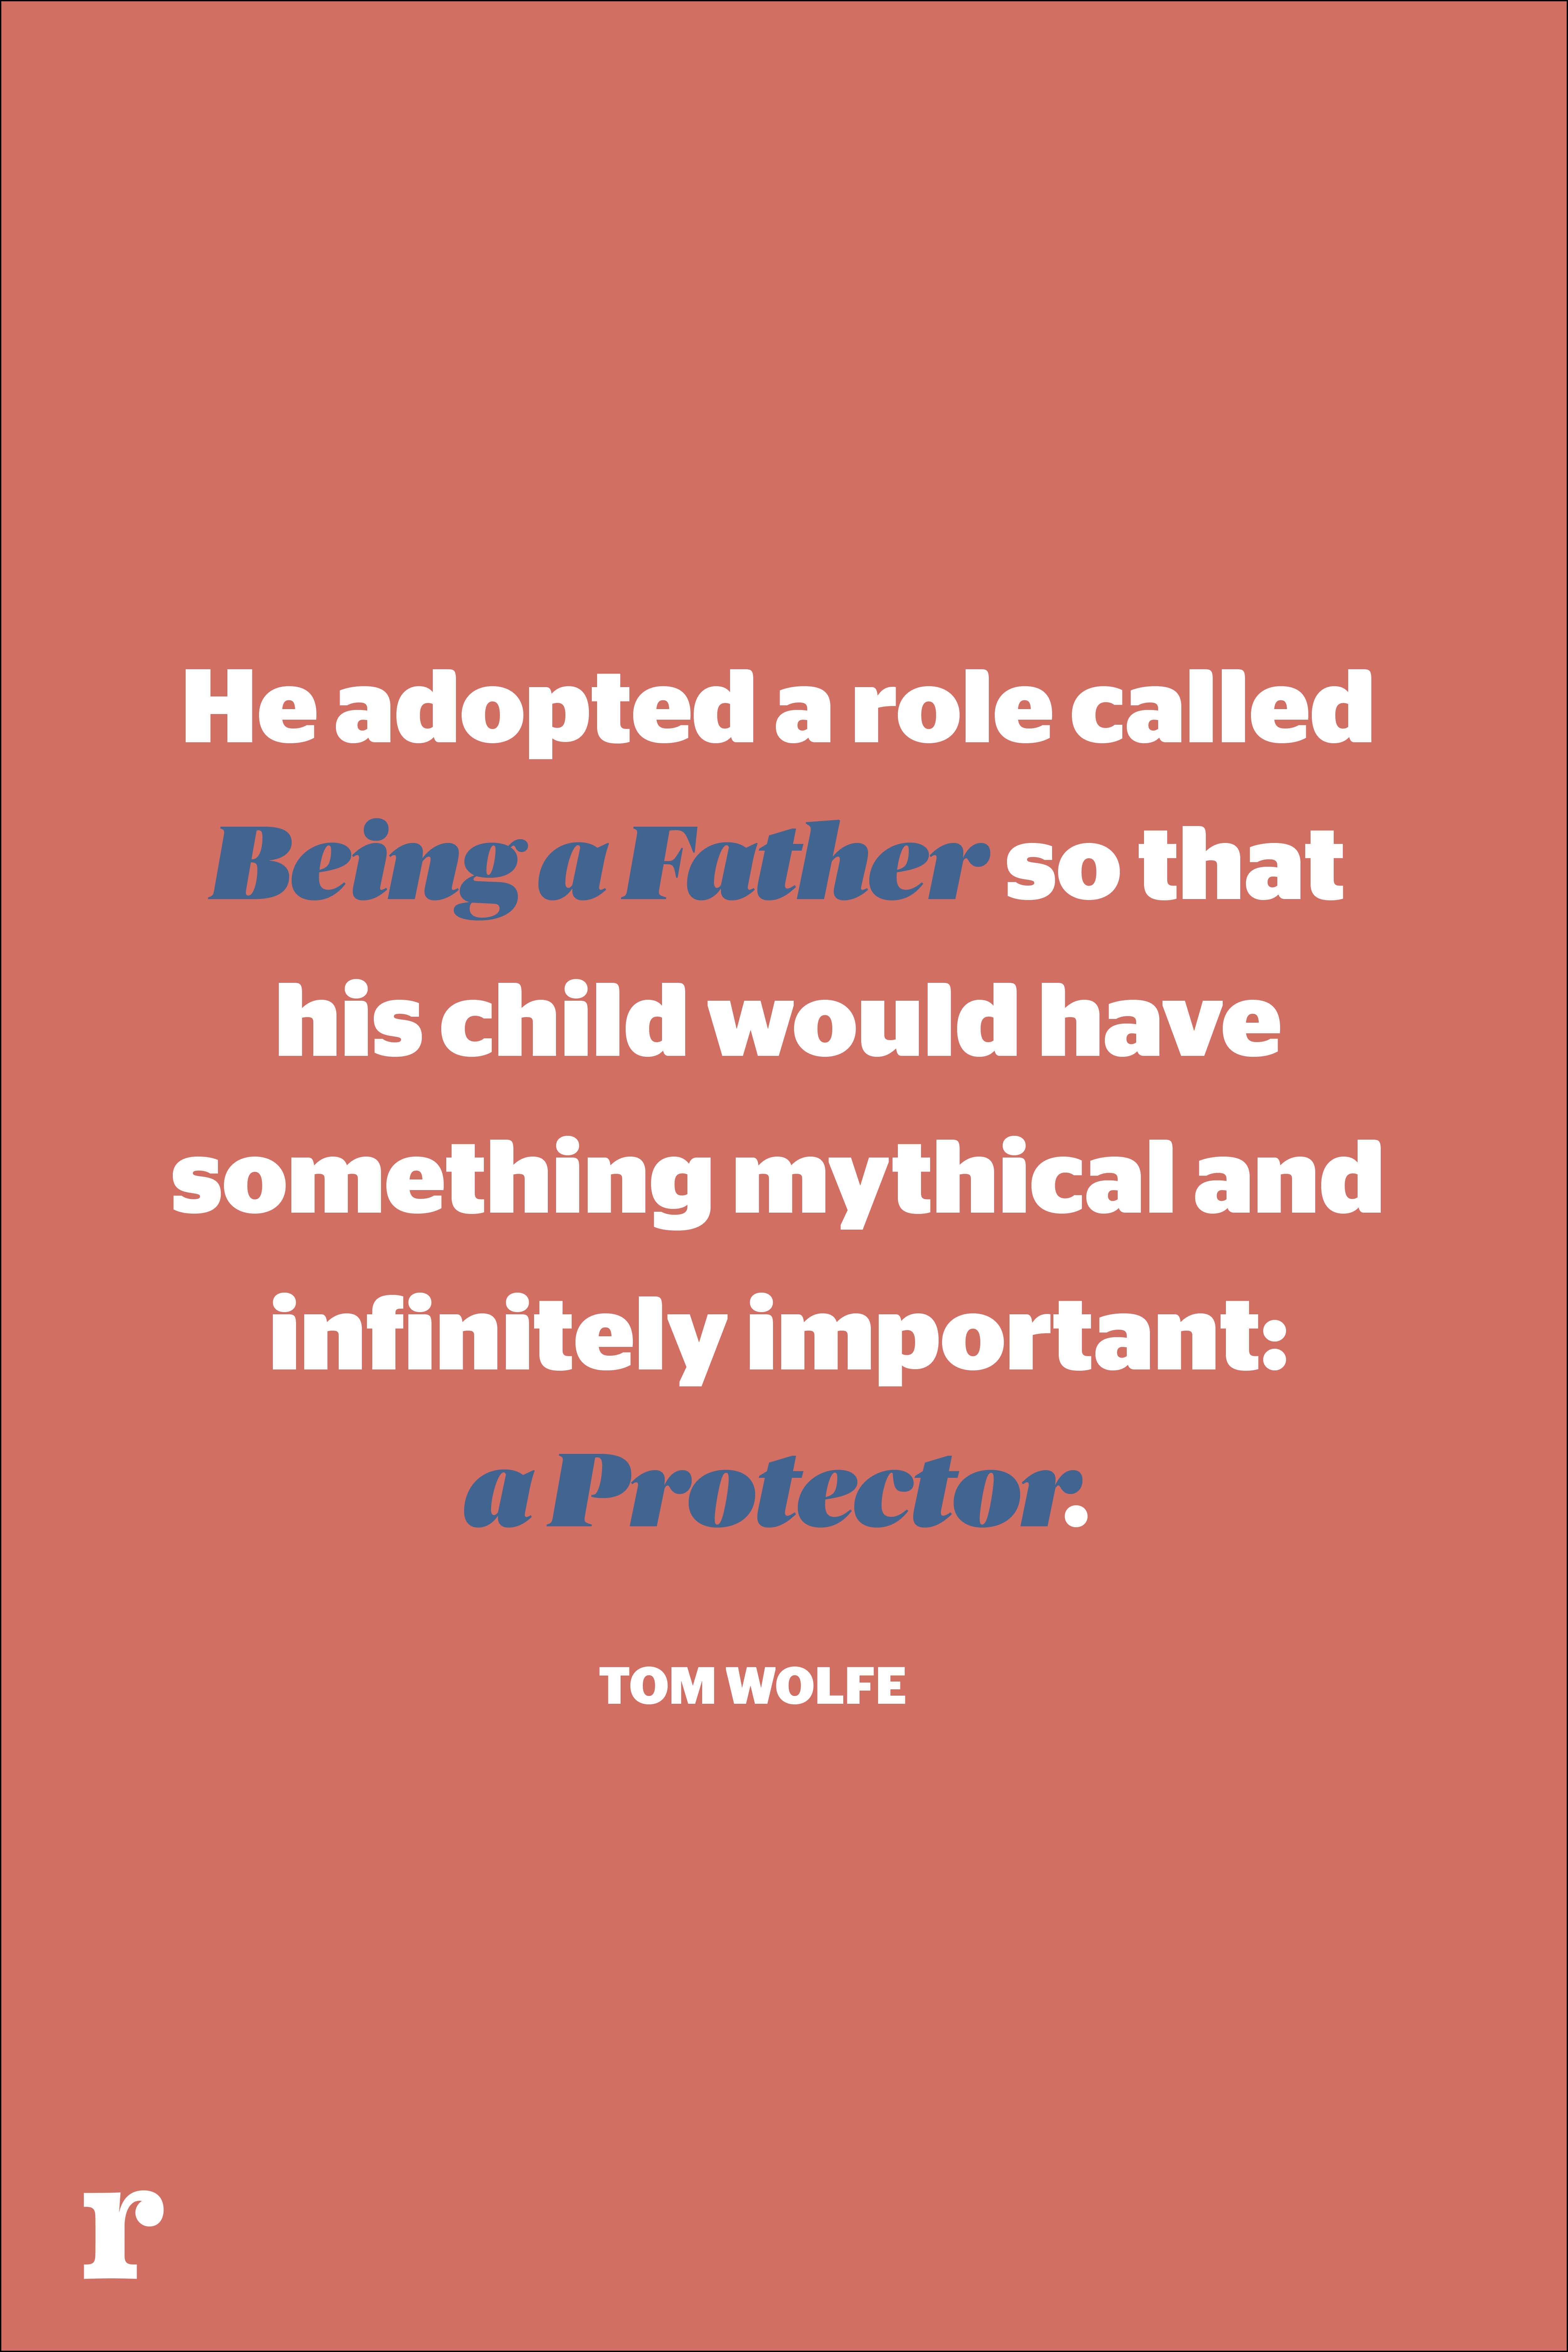 tom wolfefathers day quote